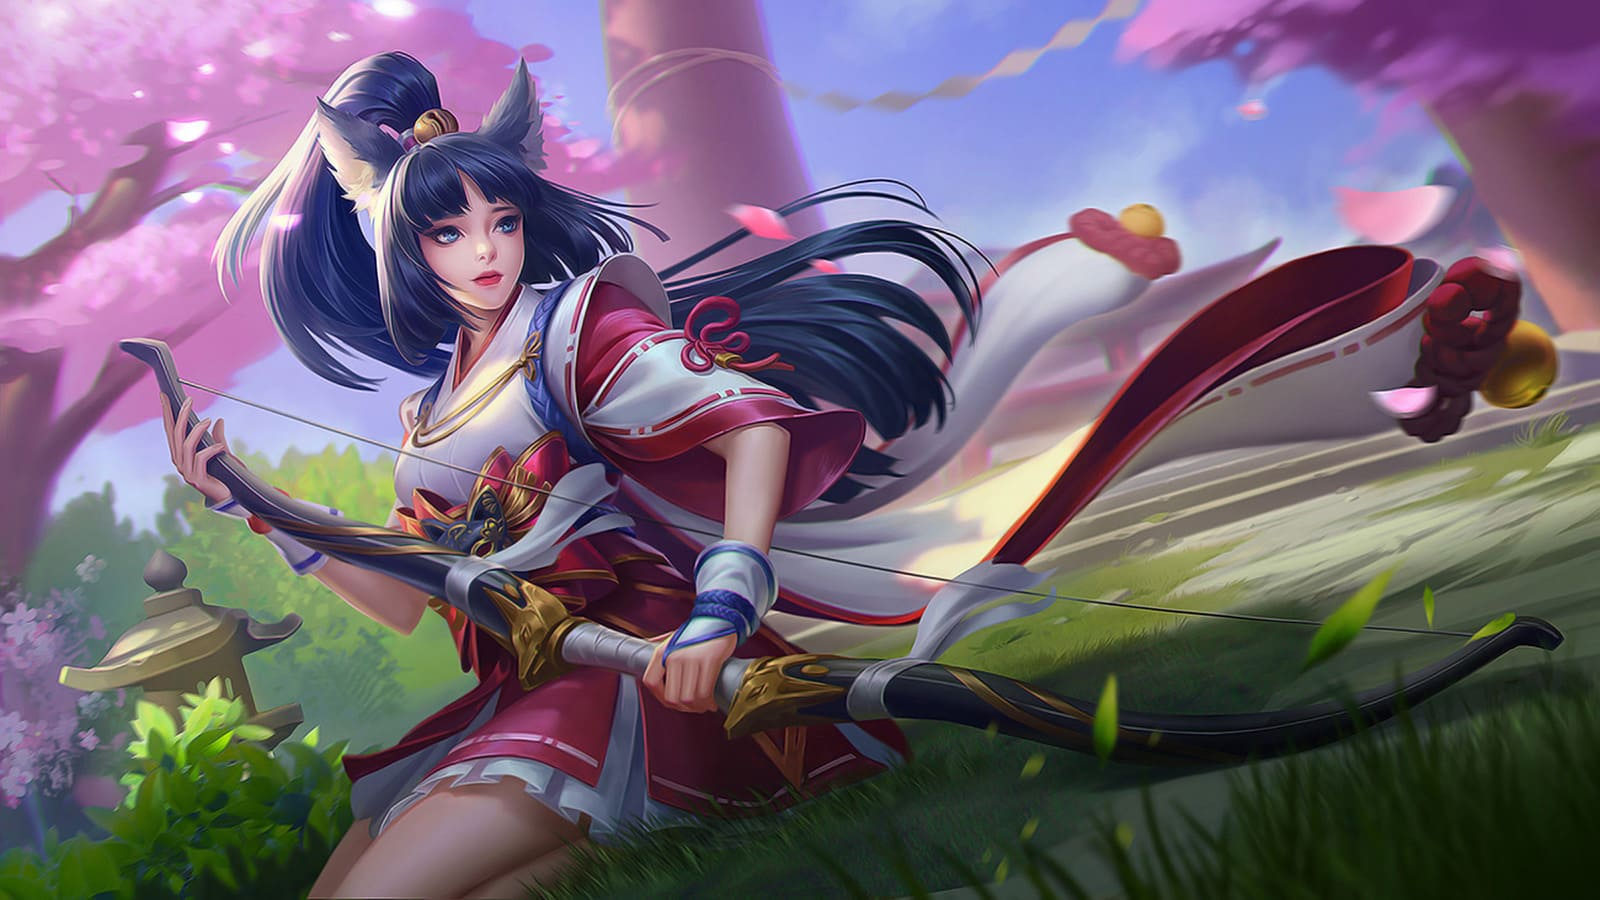 Wallpaper Miya Suzuhime Skin Mobile Legends HD for PC